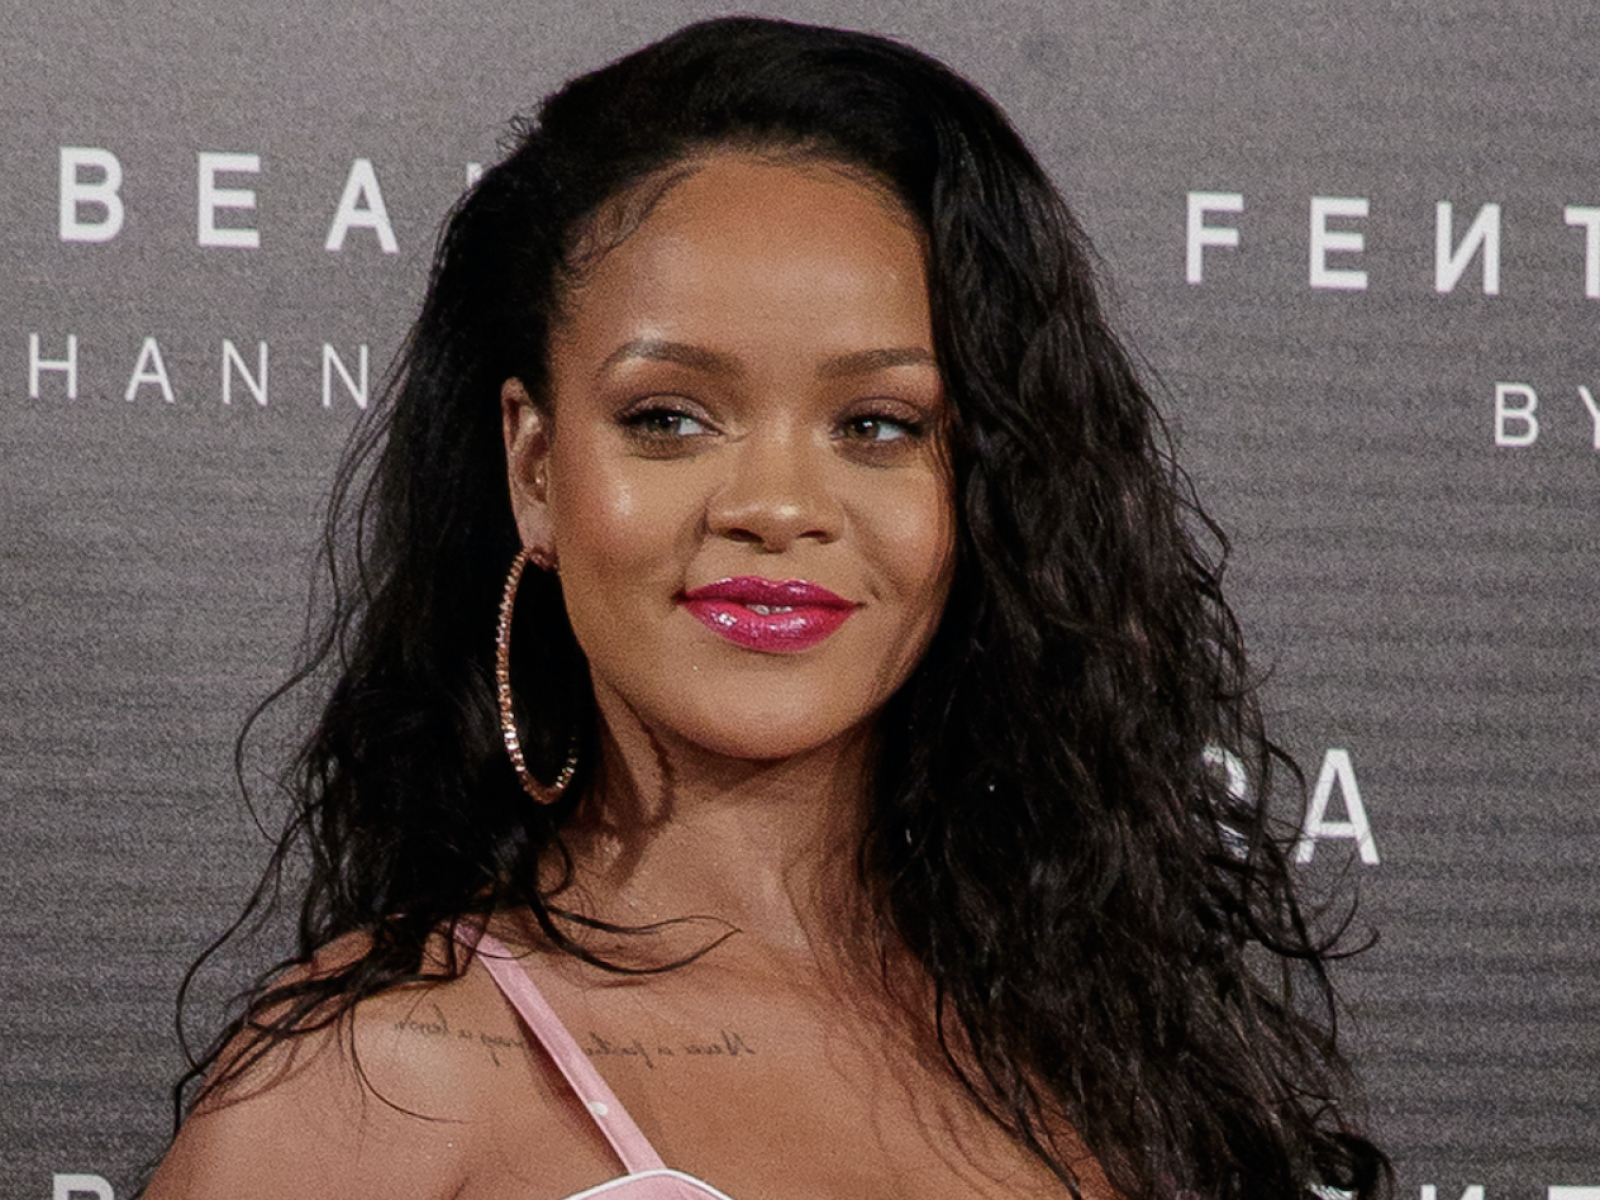 sports shoes 5c1a2 c15b3 Rihanna's New Fenty Makeup Ad With Instagram Star ...